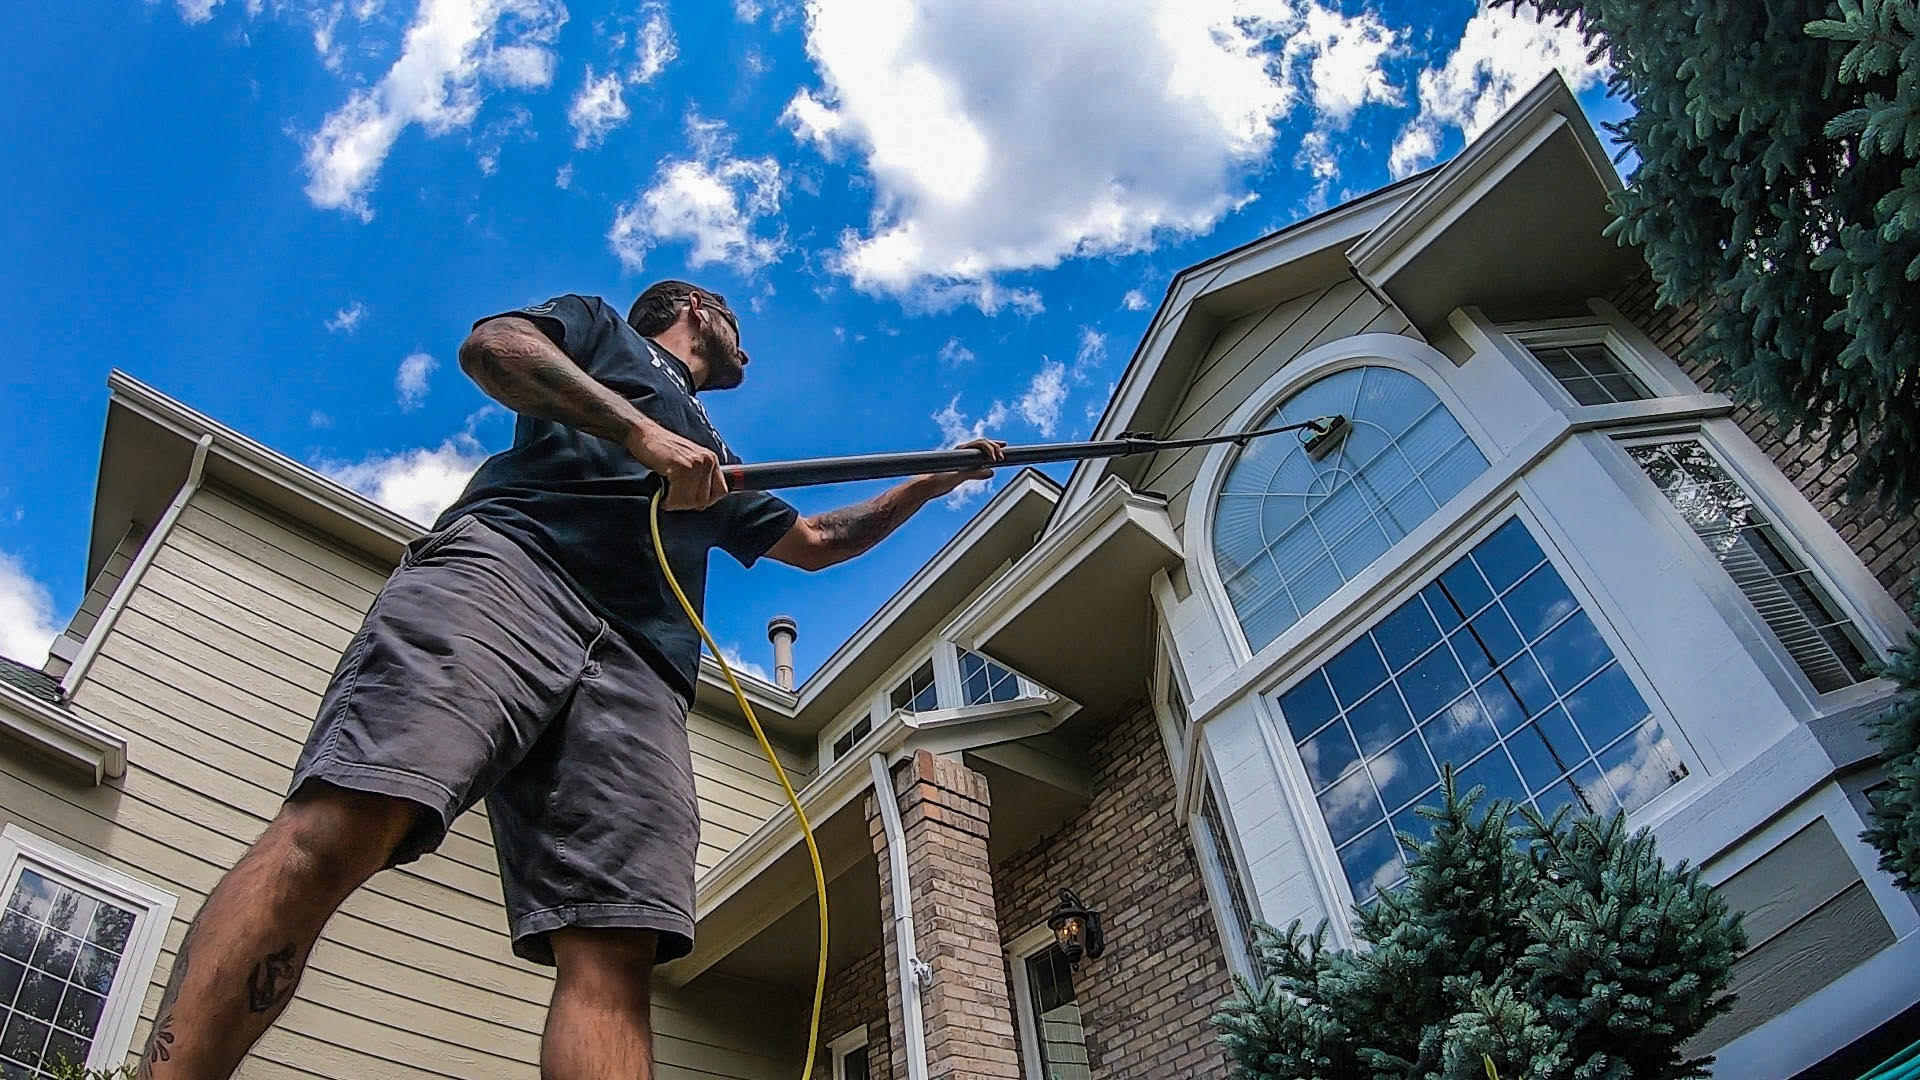 How to find reliable window cleaning services?